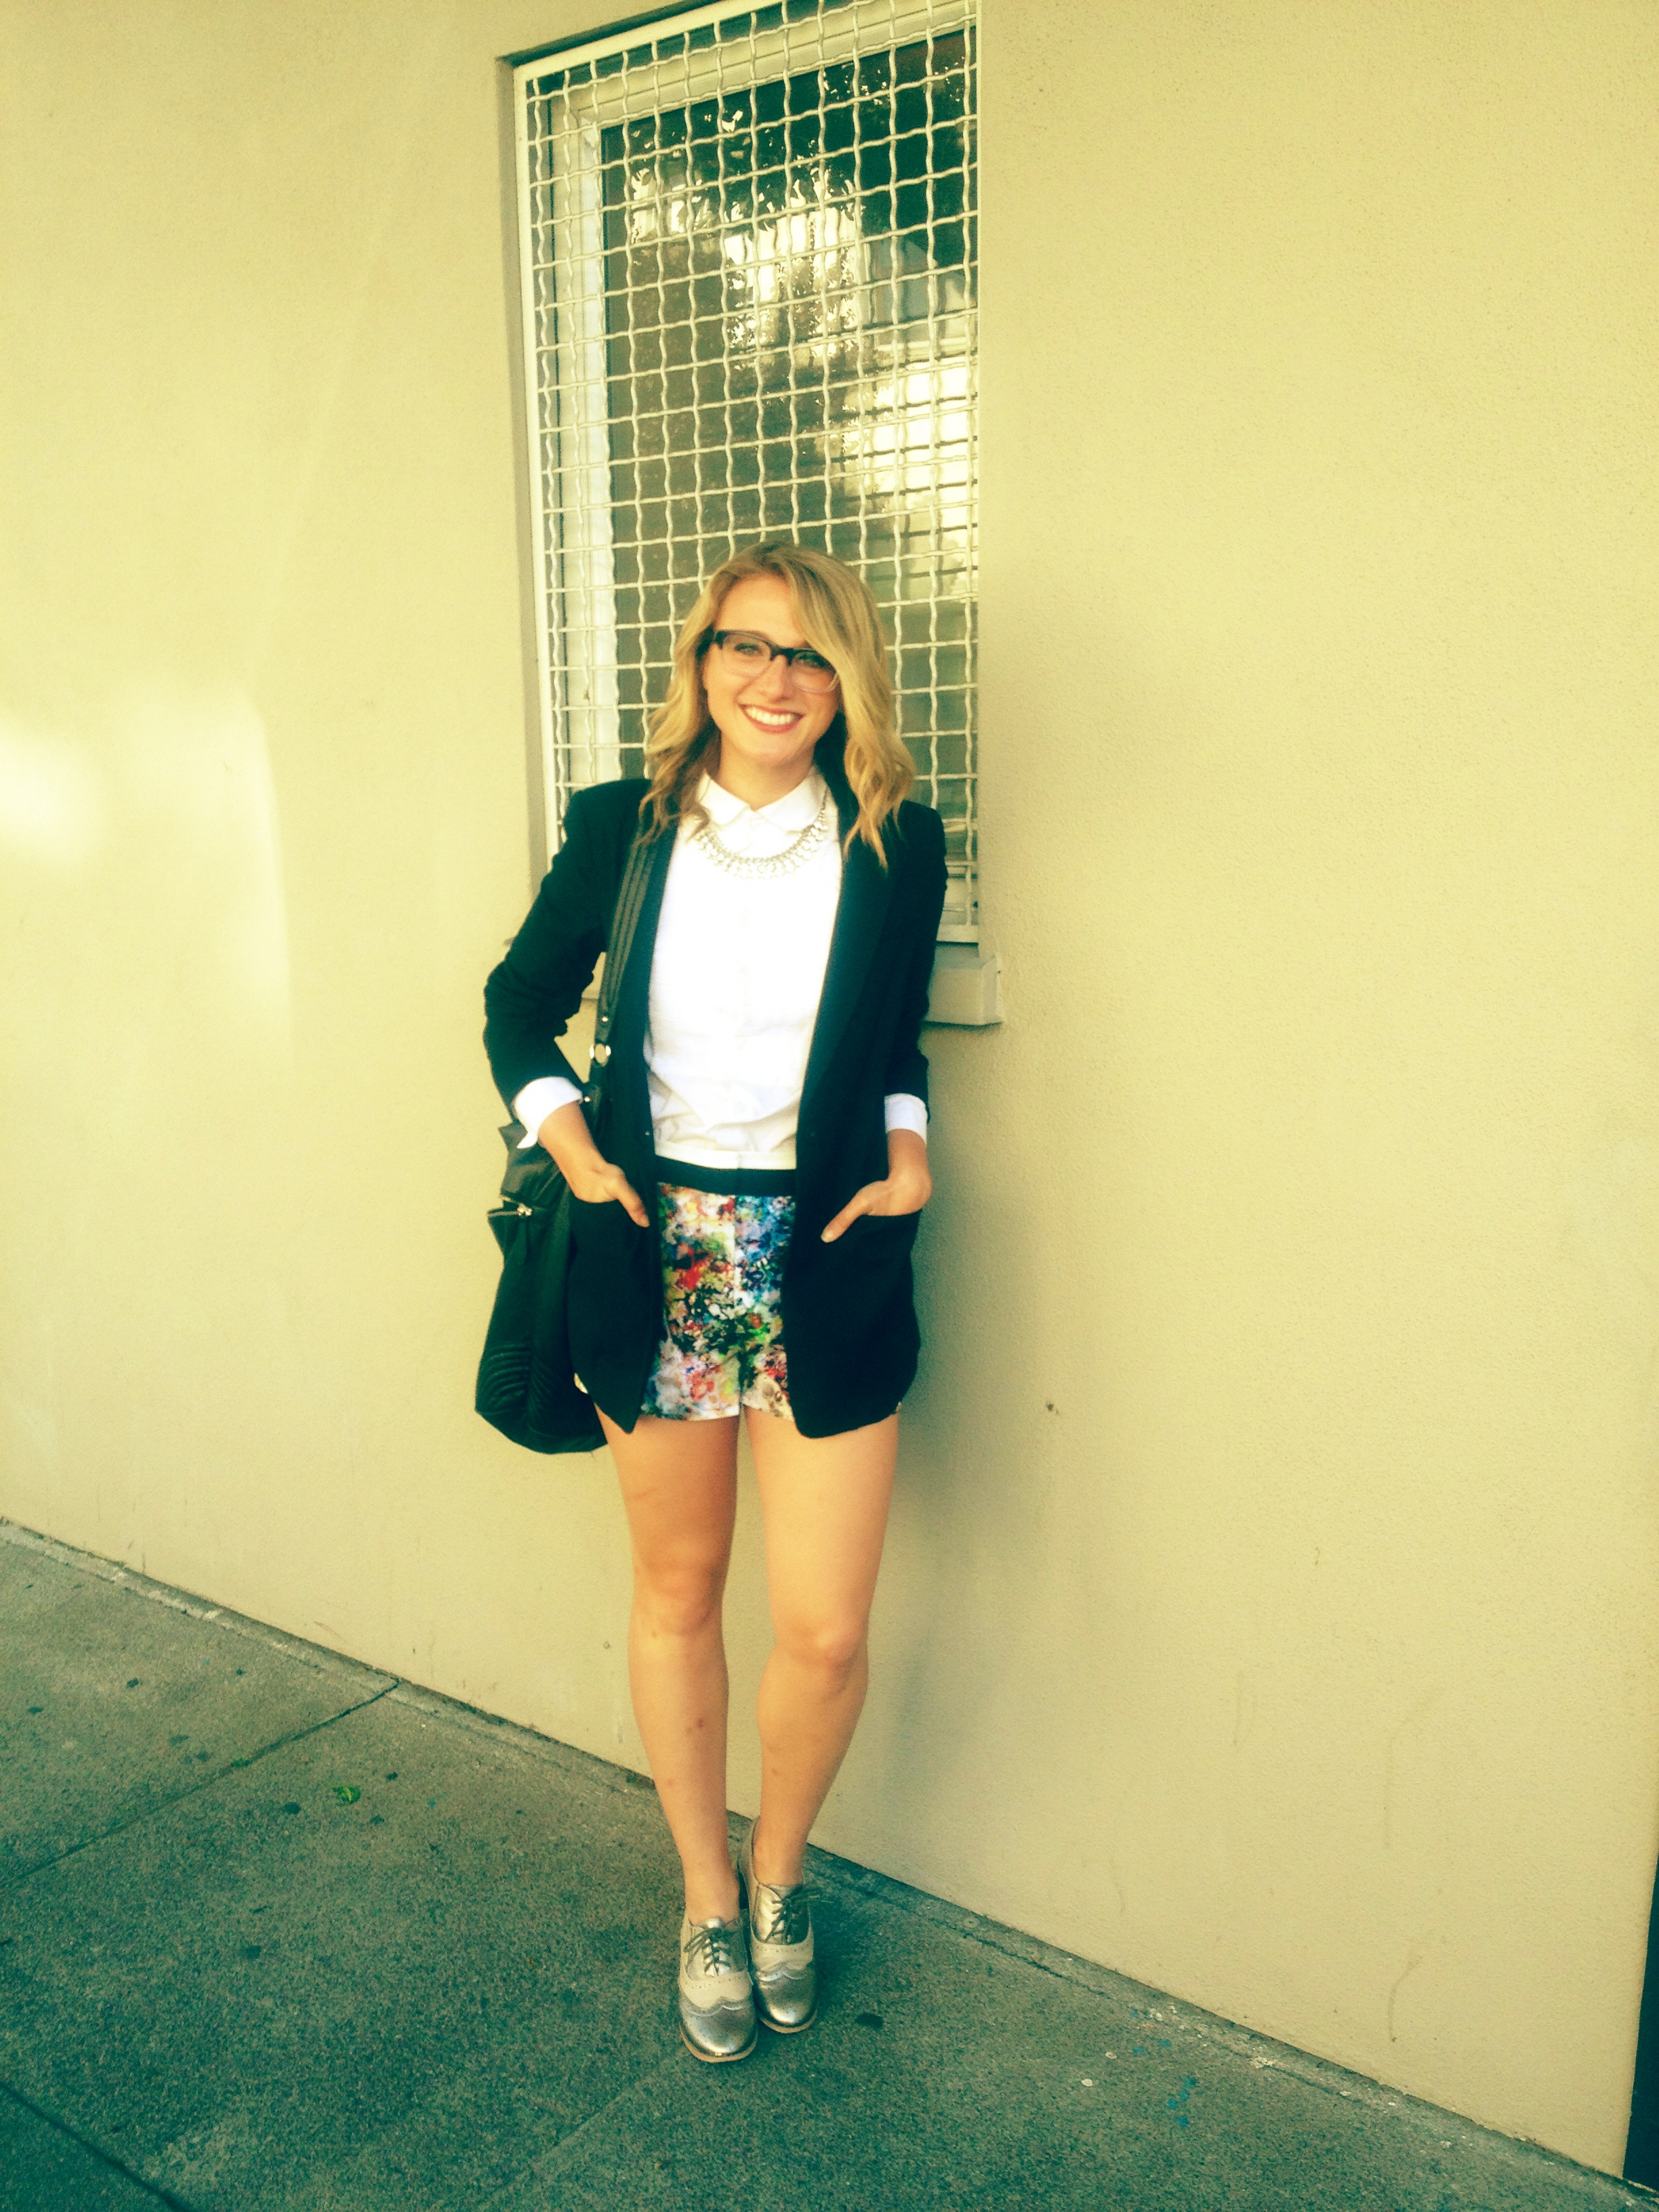 Blazer: Off Fifth | Shirt: H&M | Shorts: F21 | Shoes: DSW | Necklace: F21